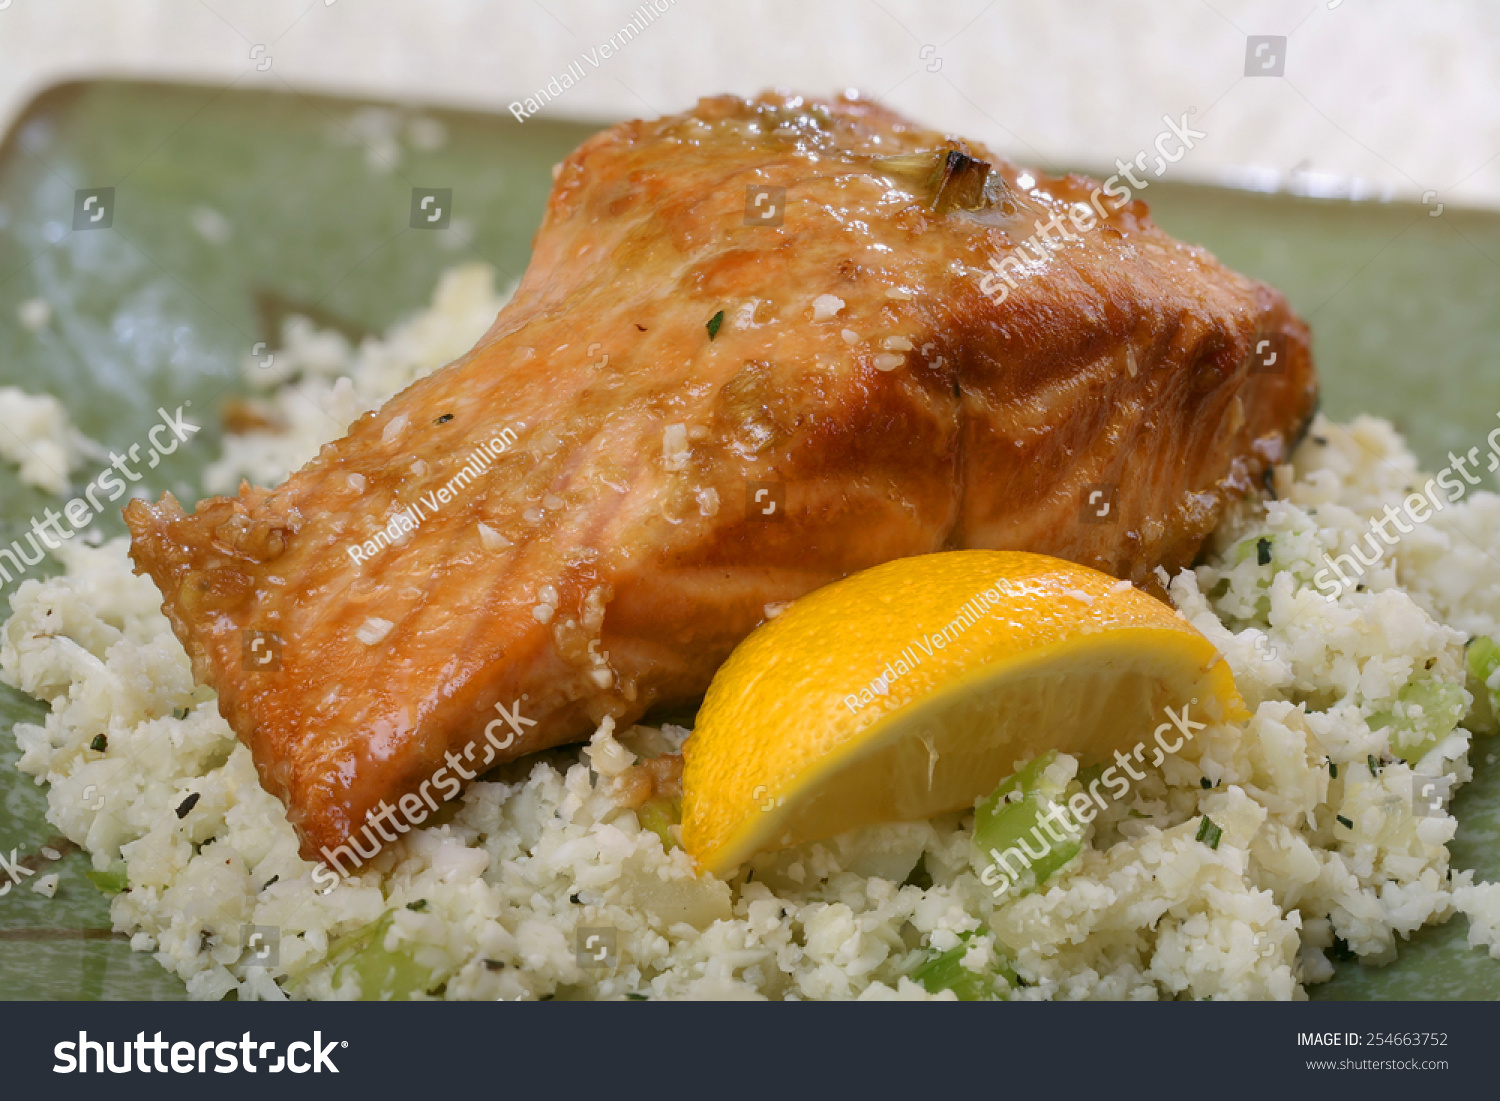 baked salmon with lemon wedge and rice cauliflower side dish stock photo 254663752 shutterstock. Black Bedroom Furniture Sets. Home Design Ideas